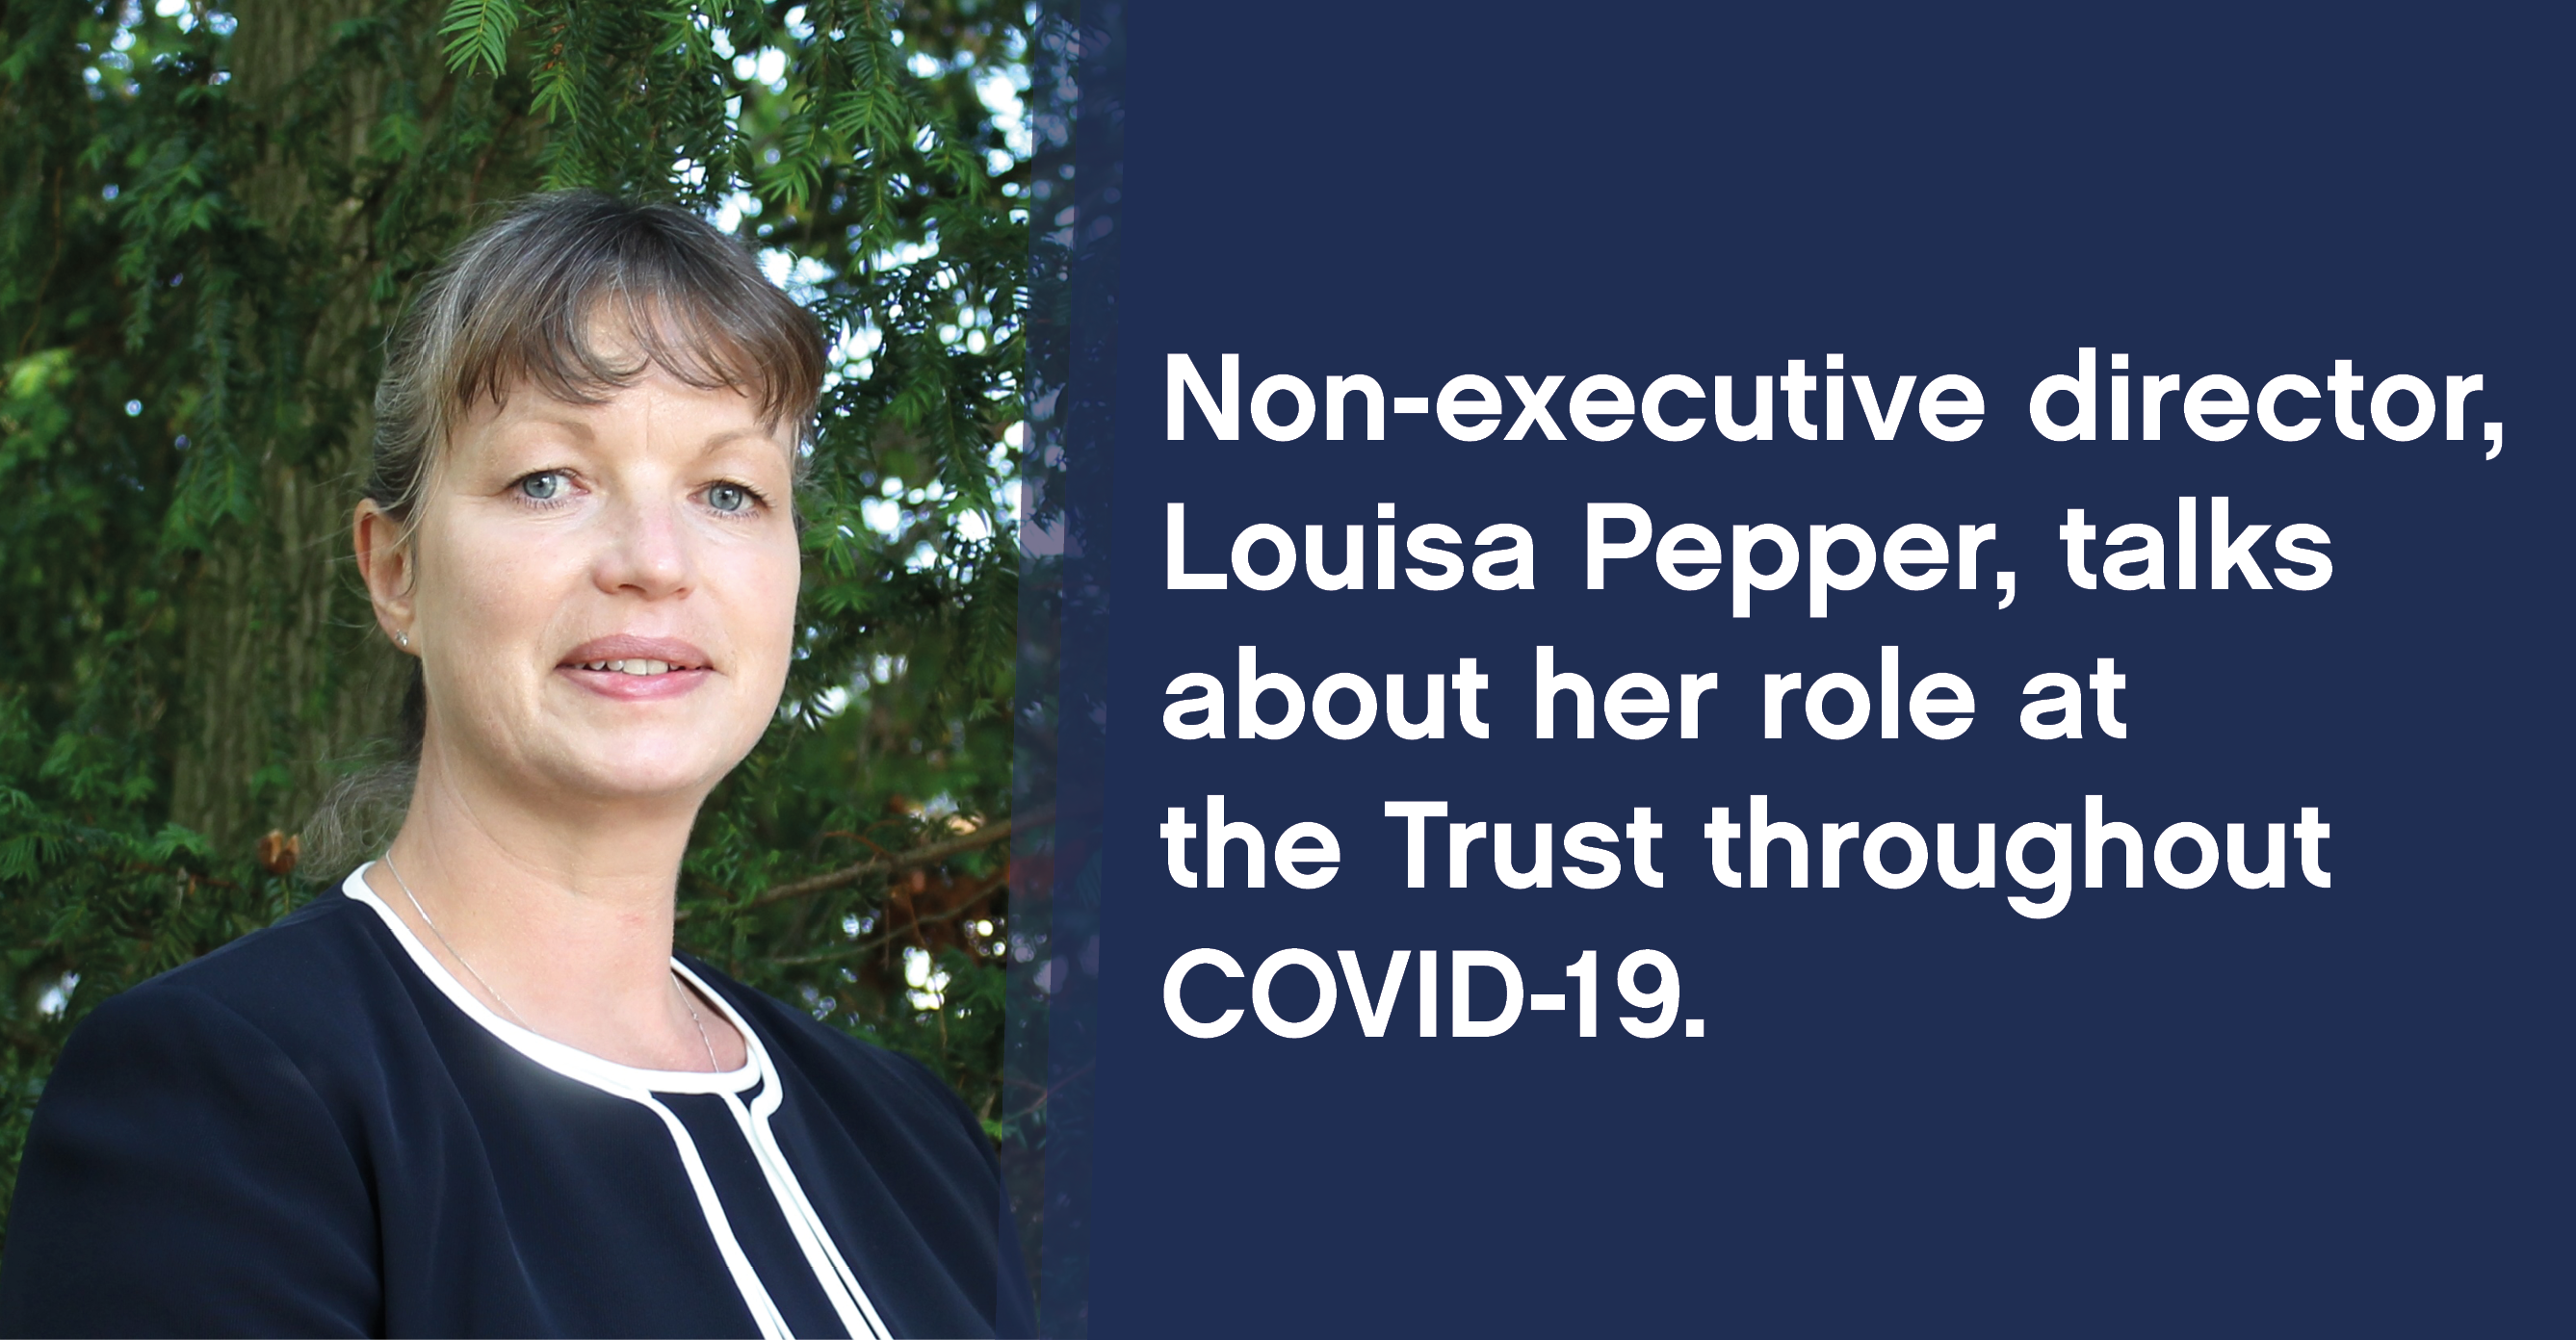 Louisa Pepper, non-executive director at the West Suffolk NHS Foundation Trust.